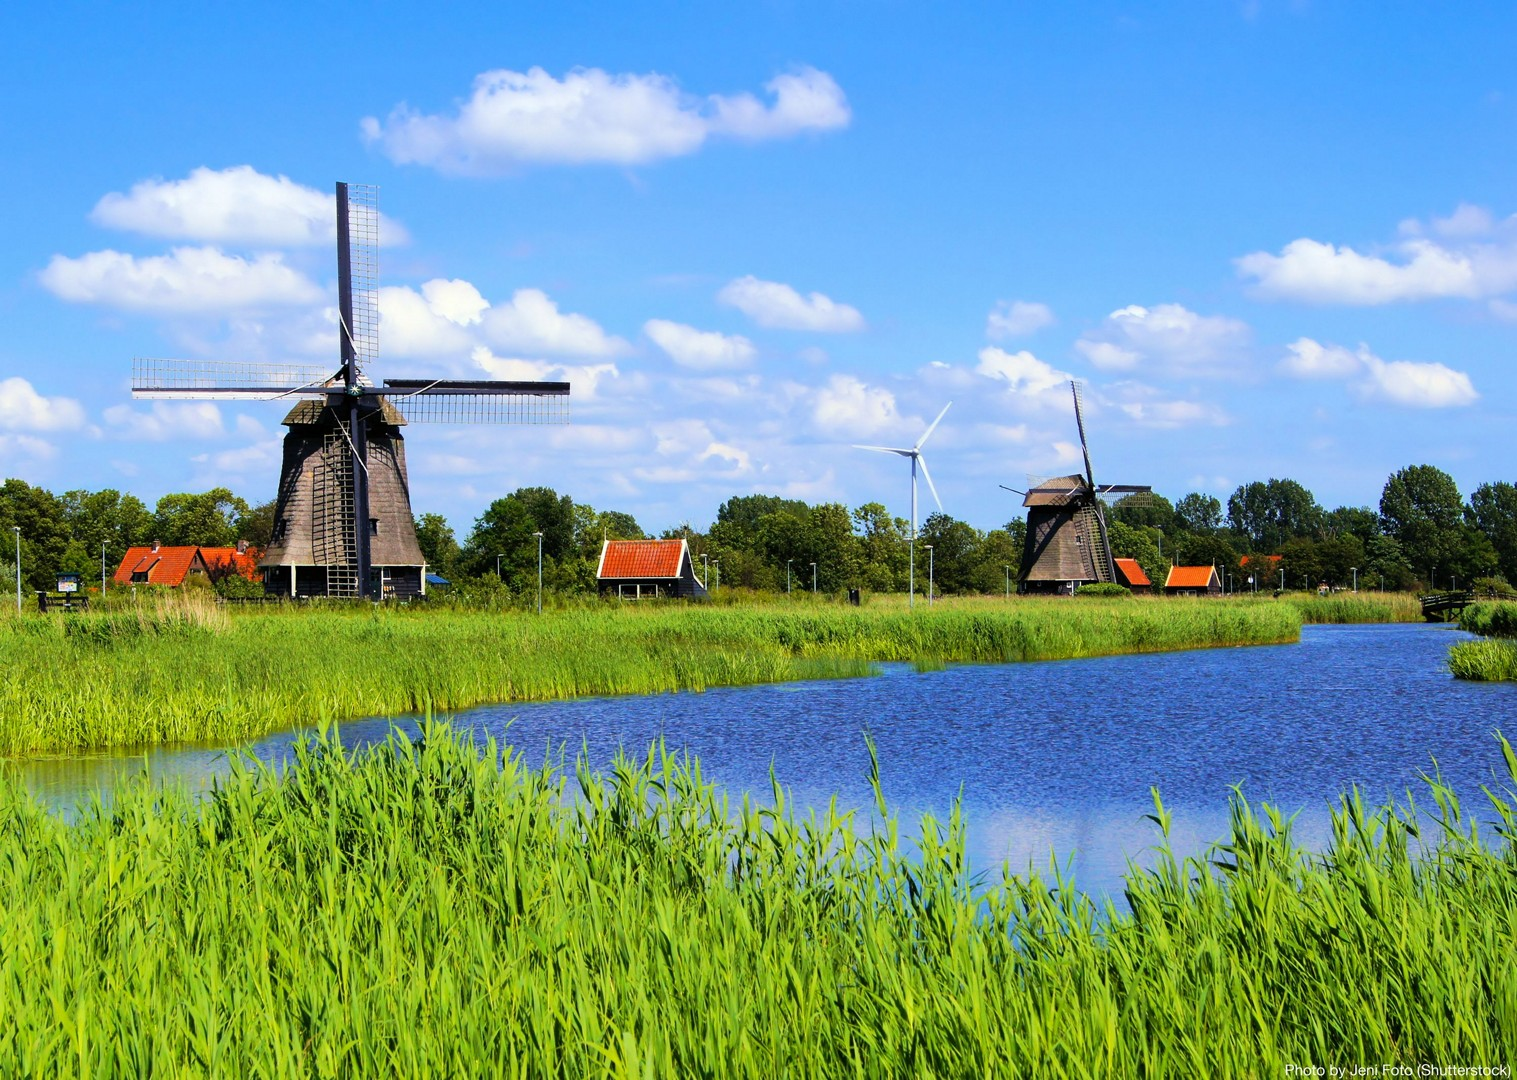 holland-windmills-and-golden-beaches-bike-and-barge-holiday.jpg - Holland - Windmills and Golden Beaches - Bike and Barge Holiday - Leisure Cycling